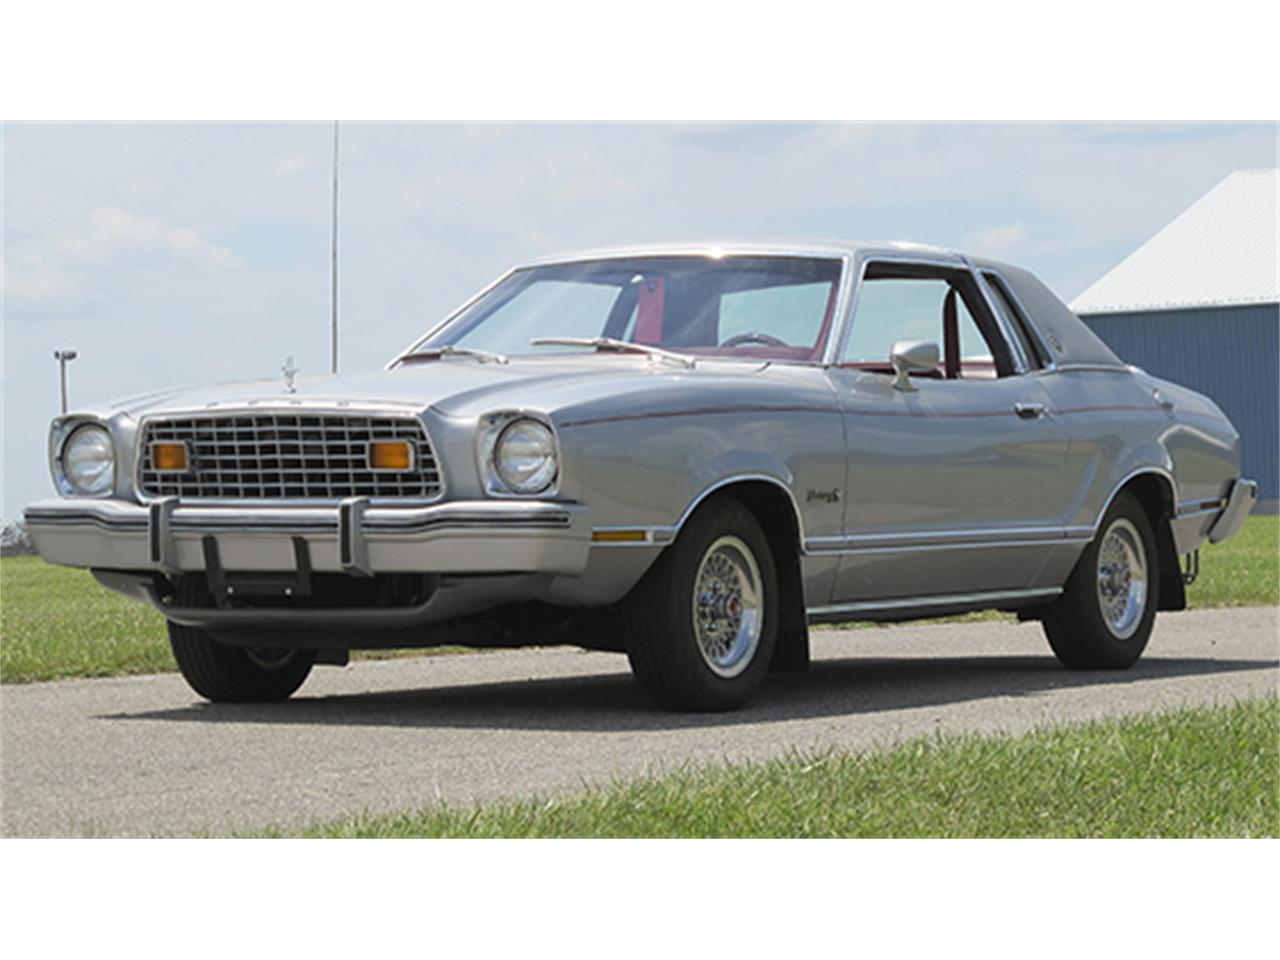 Large picture of 76 mustang ii ghia lemc